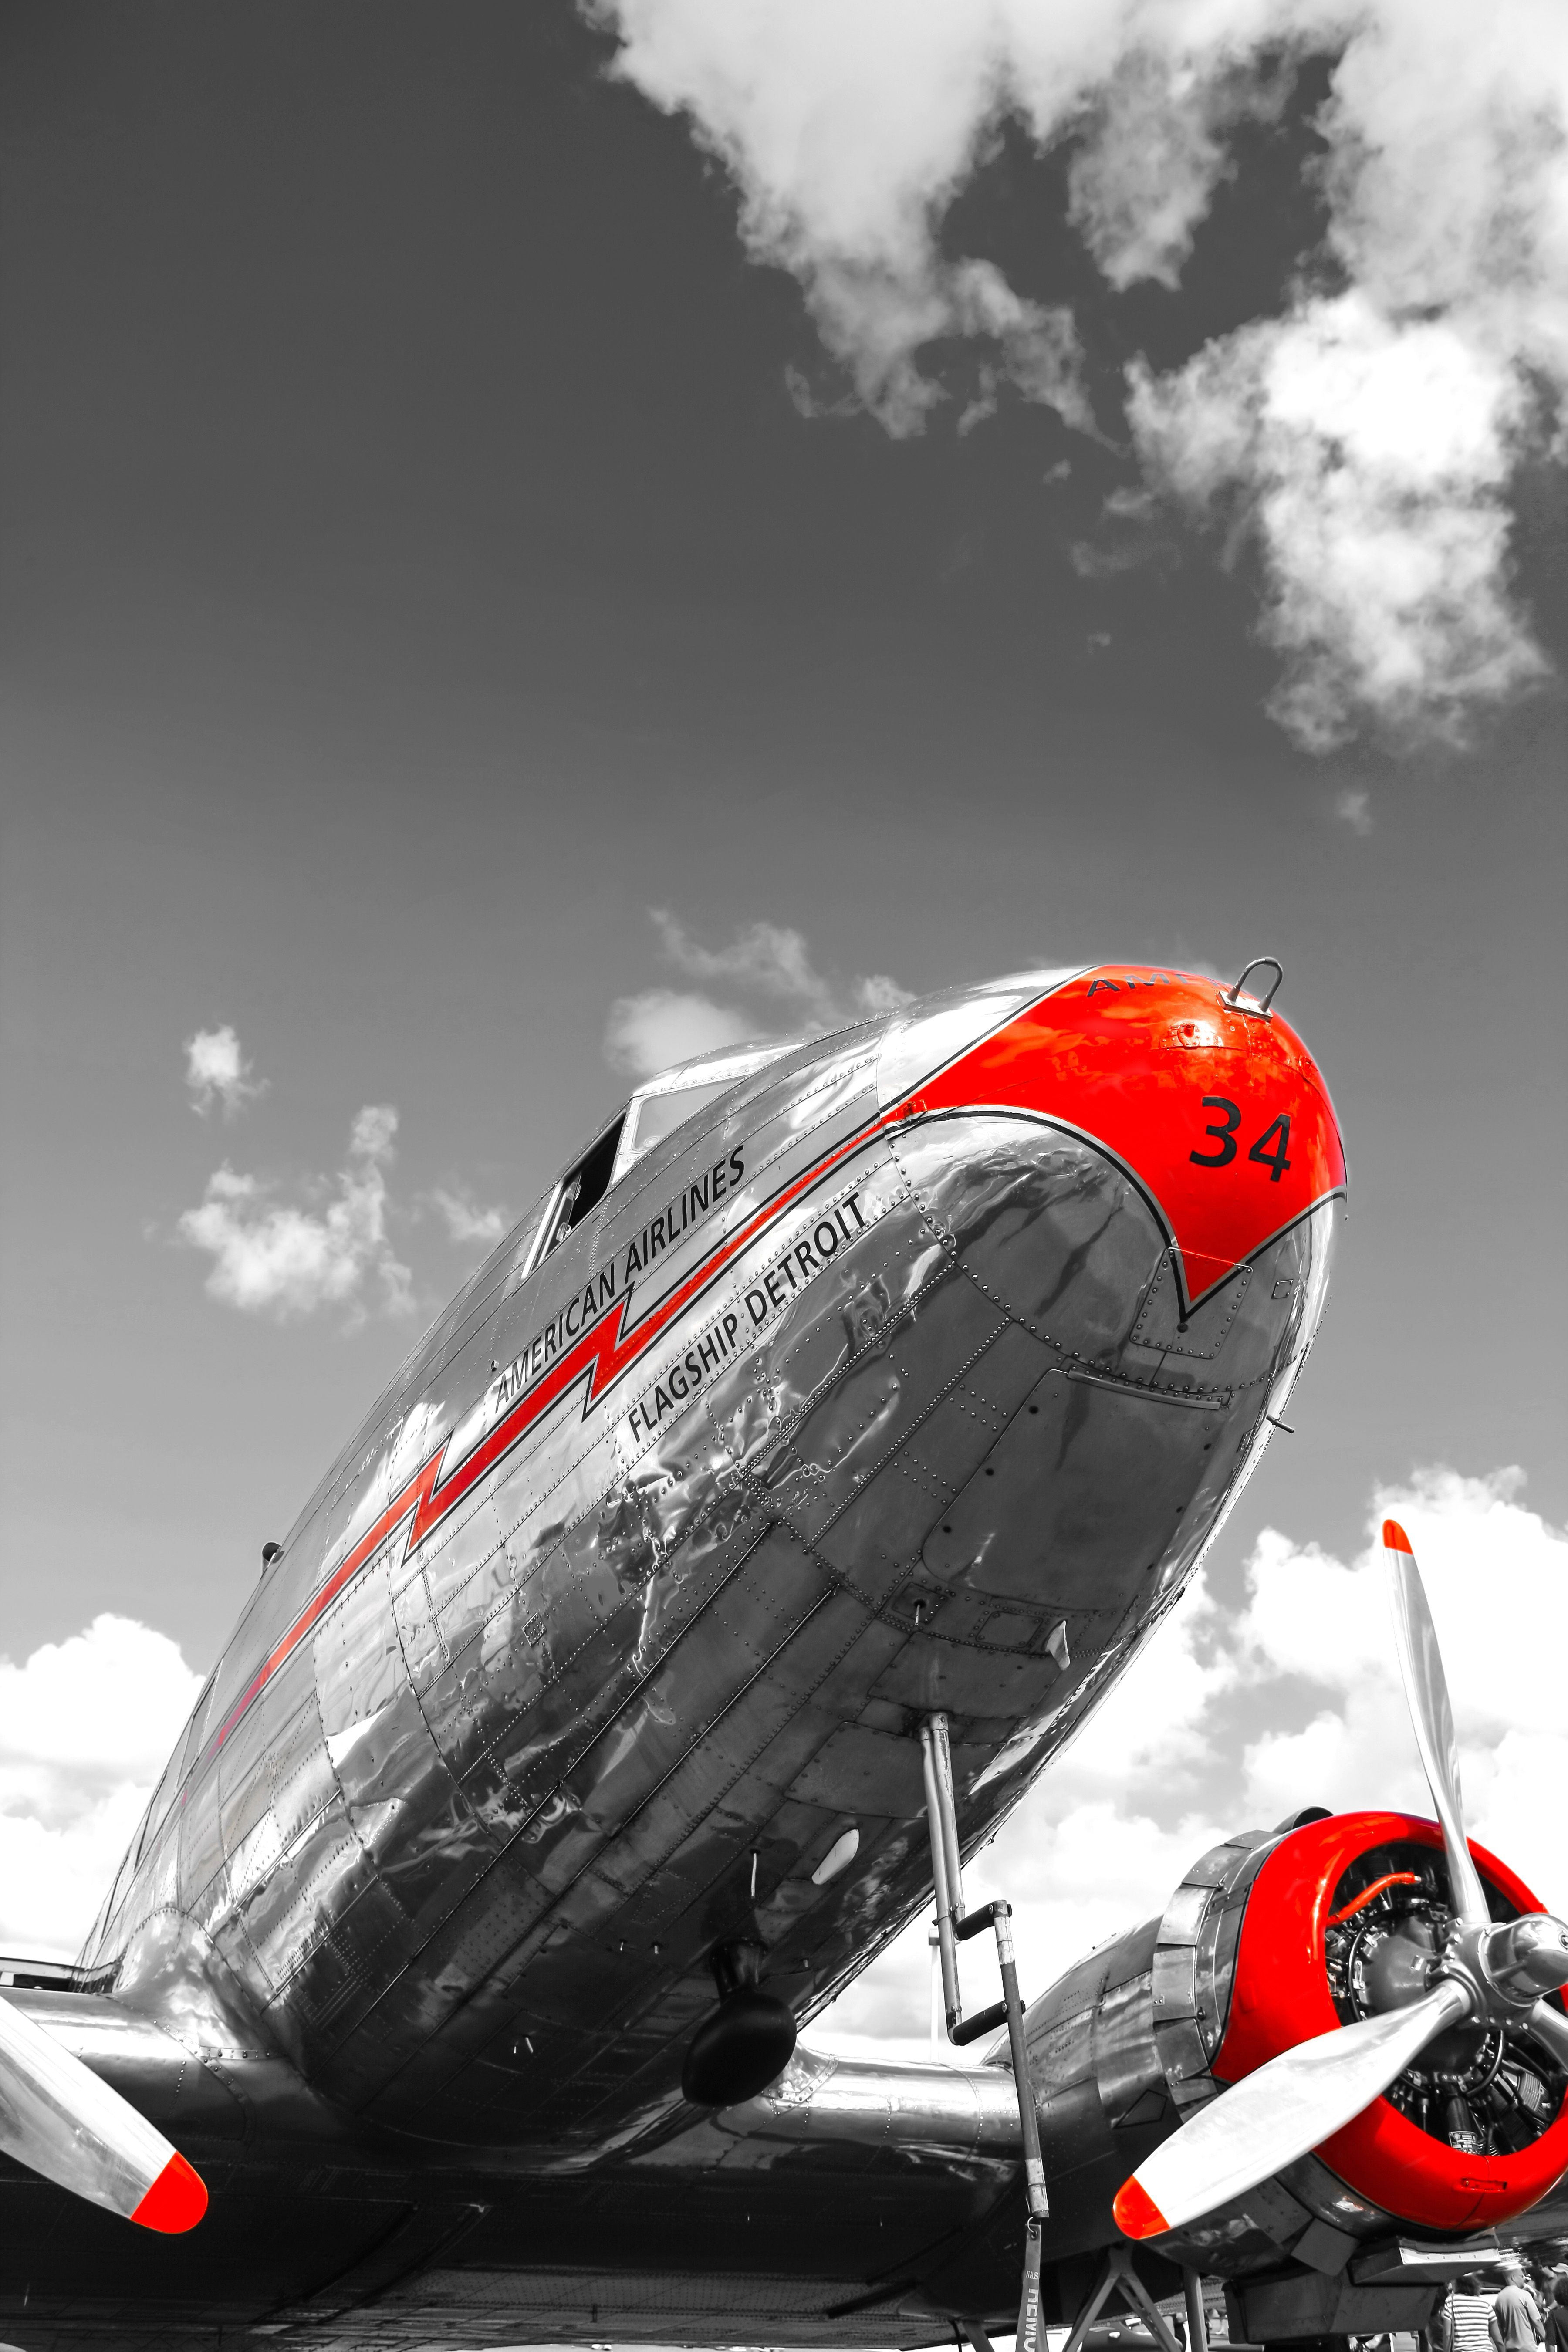 red highlites dc3 vintage aviation wall decor print 12x18in satin